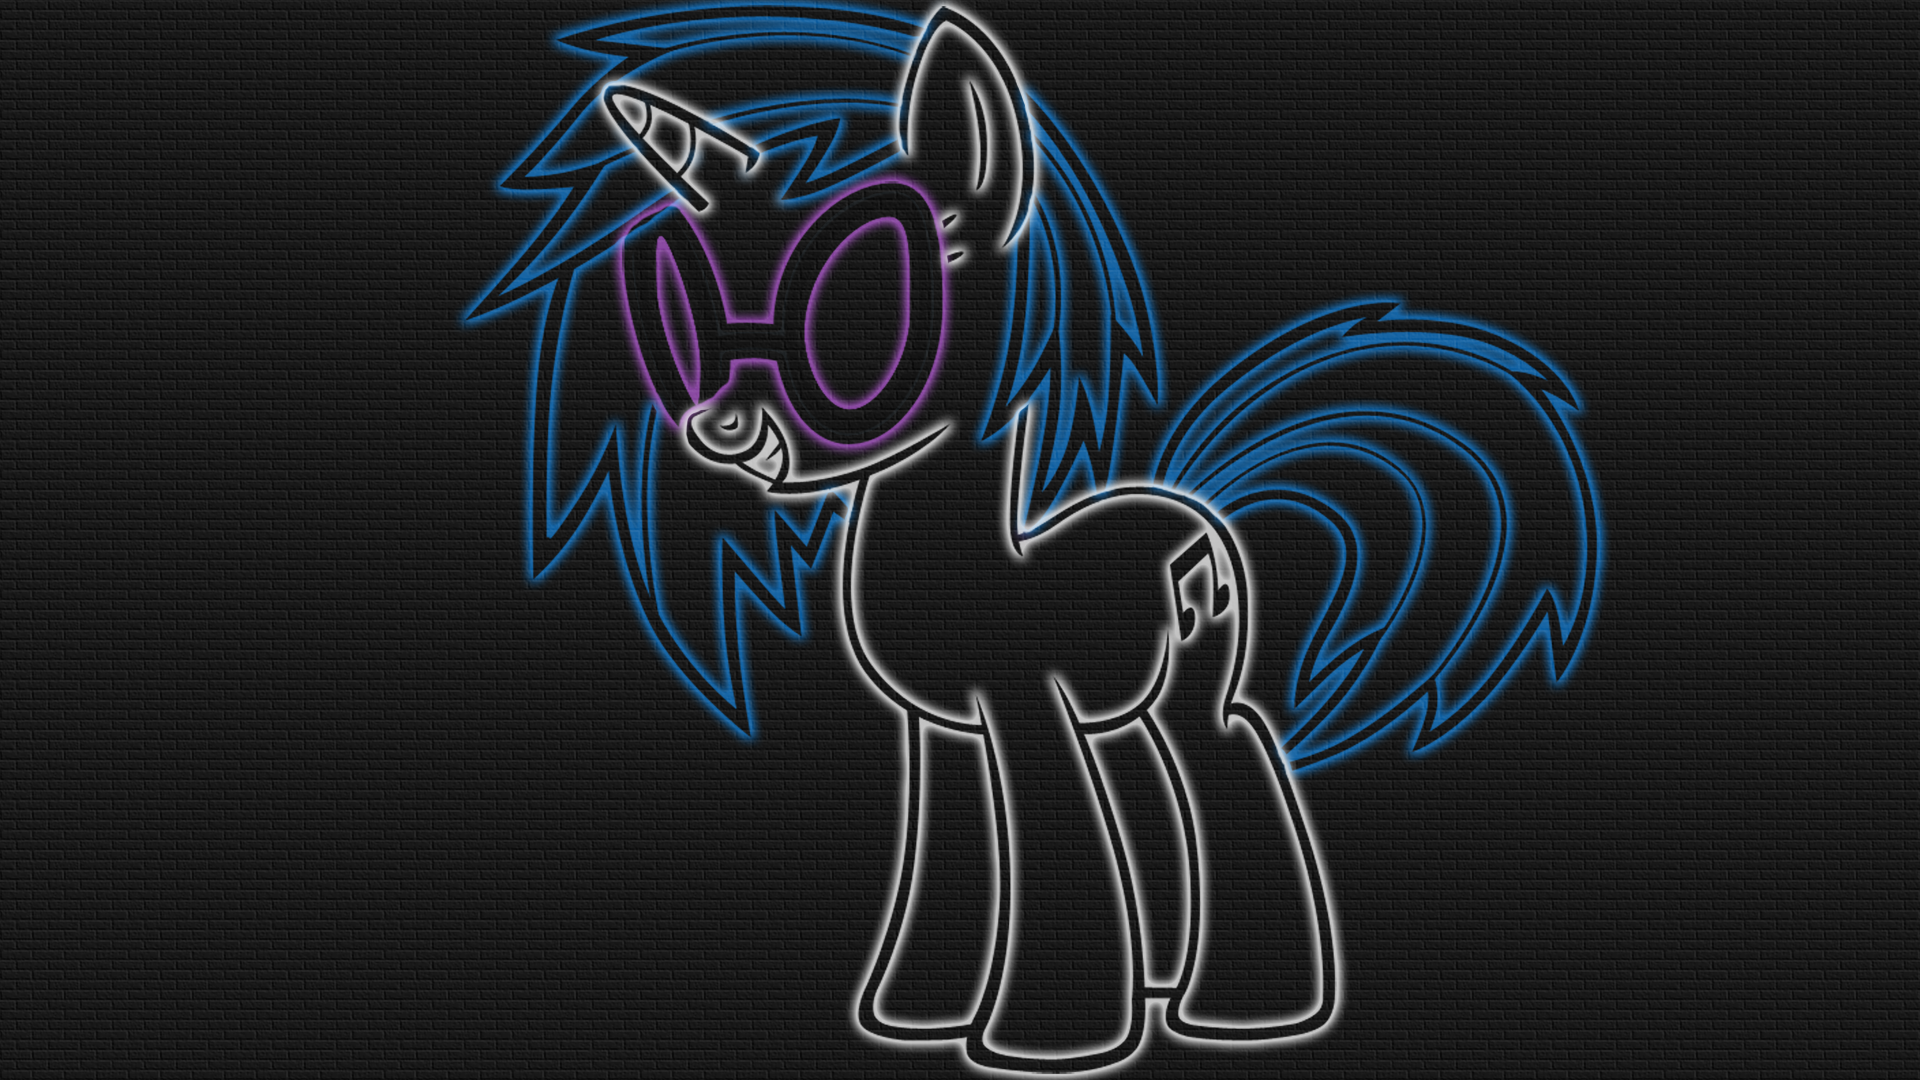 Vinyl Scratch - LineArt Neon-Glow Wallpaper by GT4tube on ...